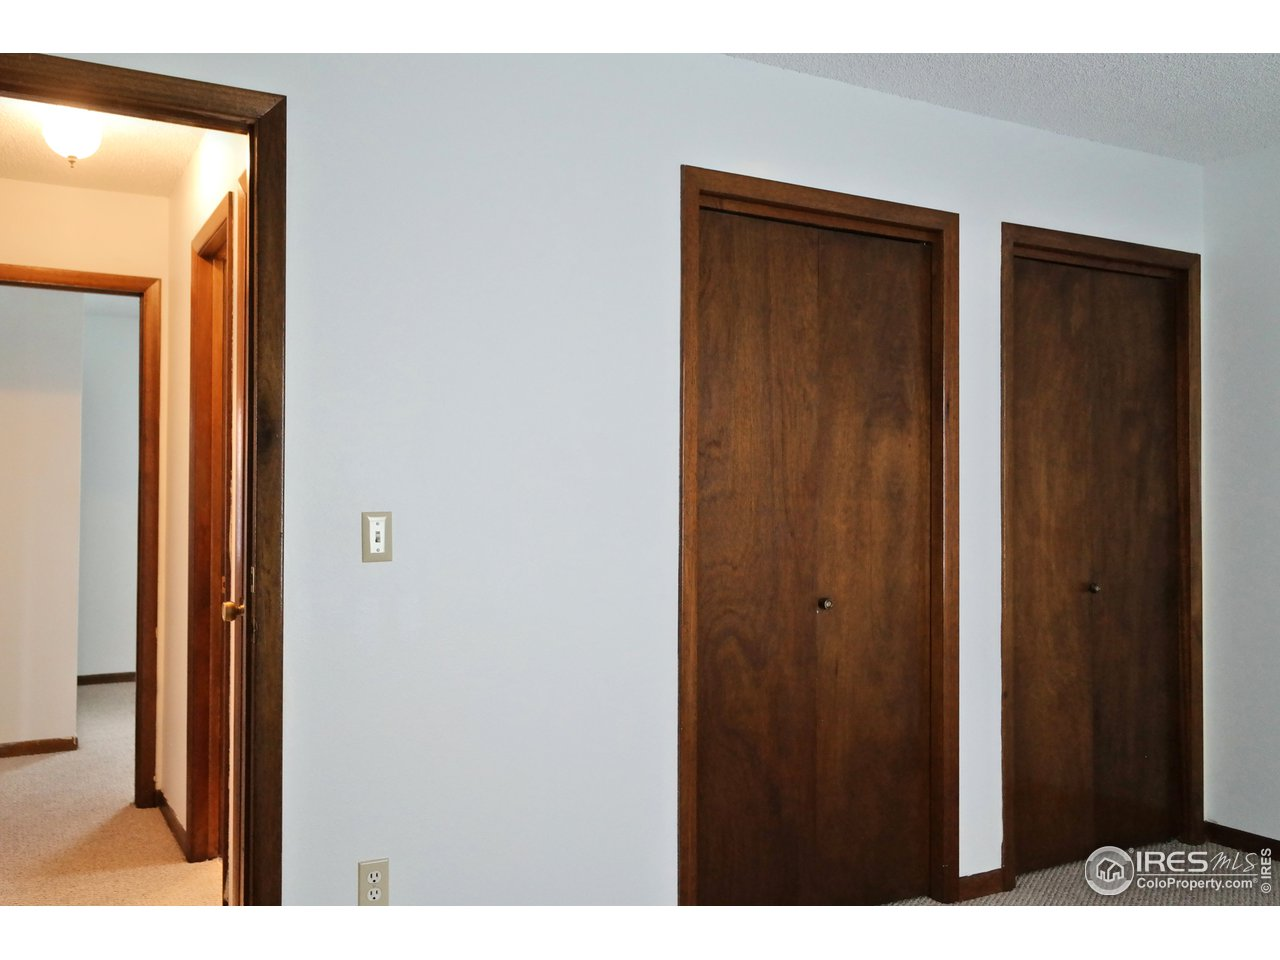 Double Closets for Extra Storage